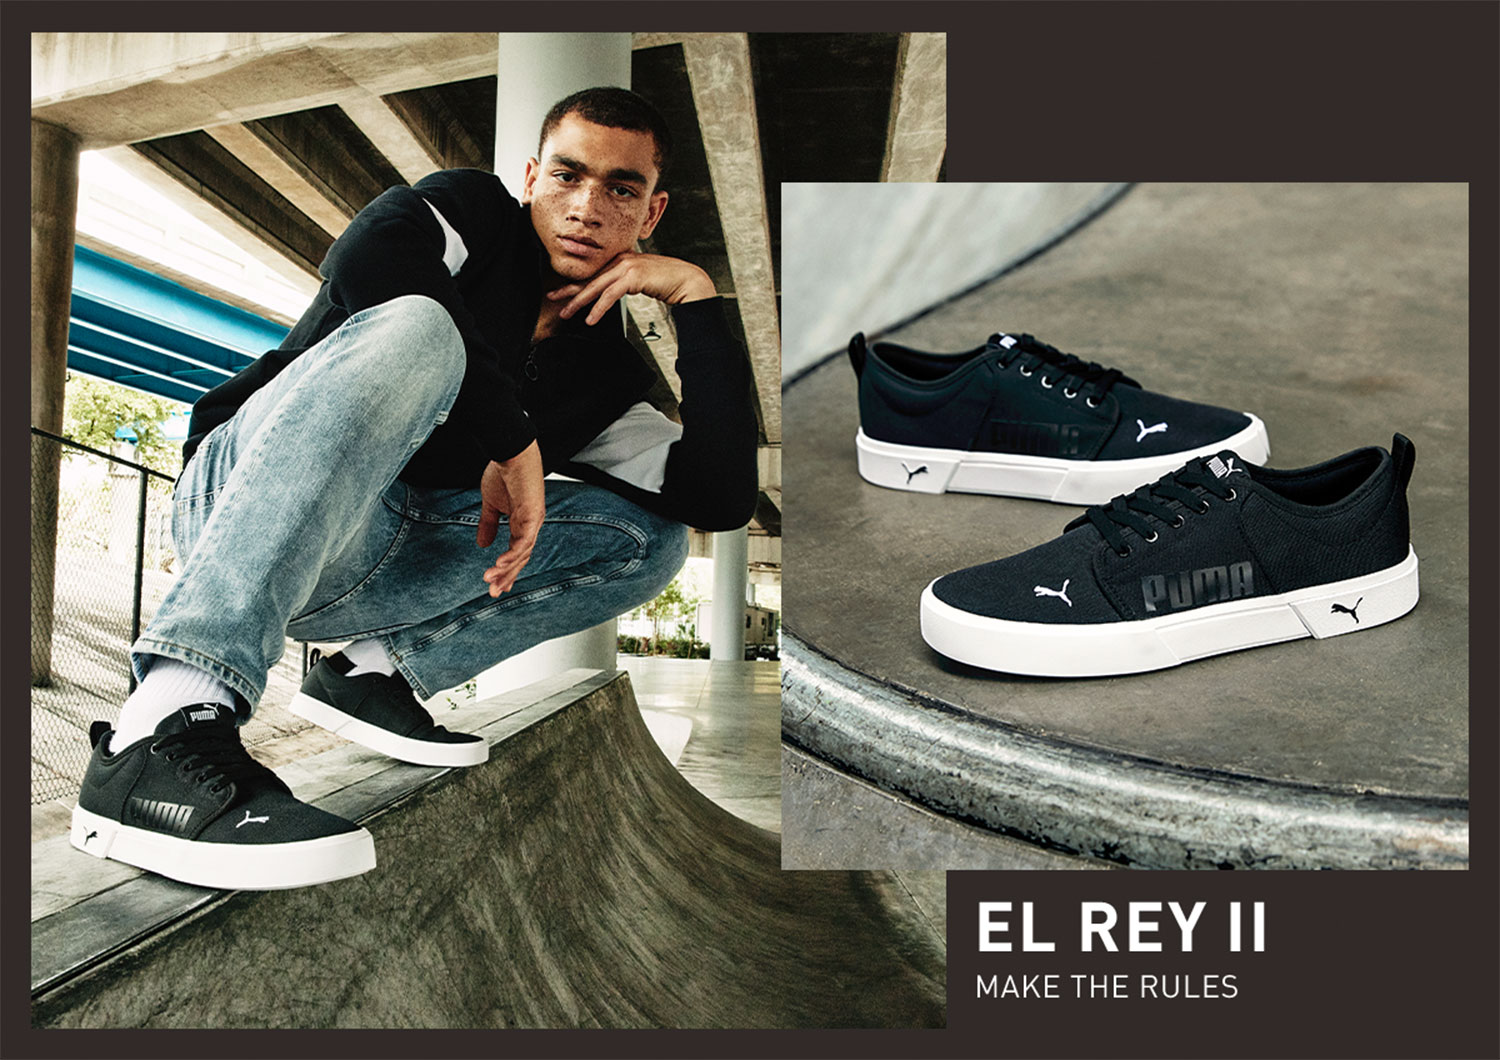 Be bold in El Rey II.